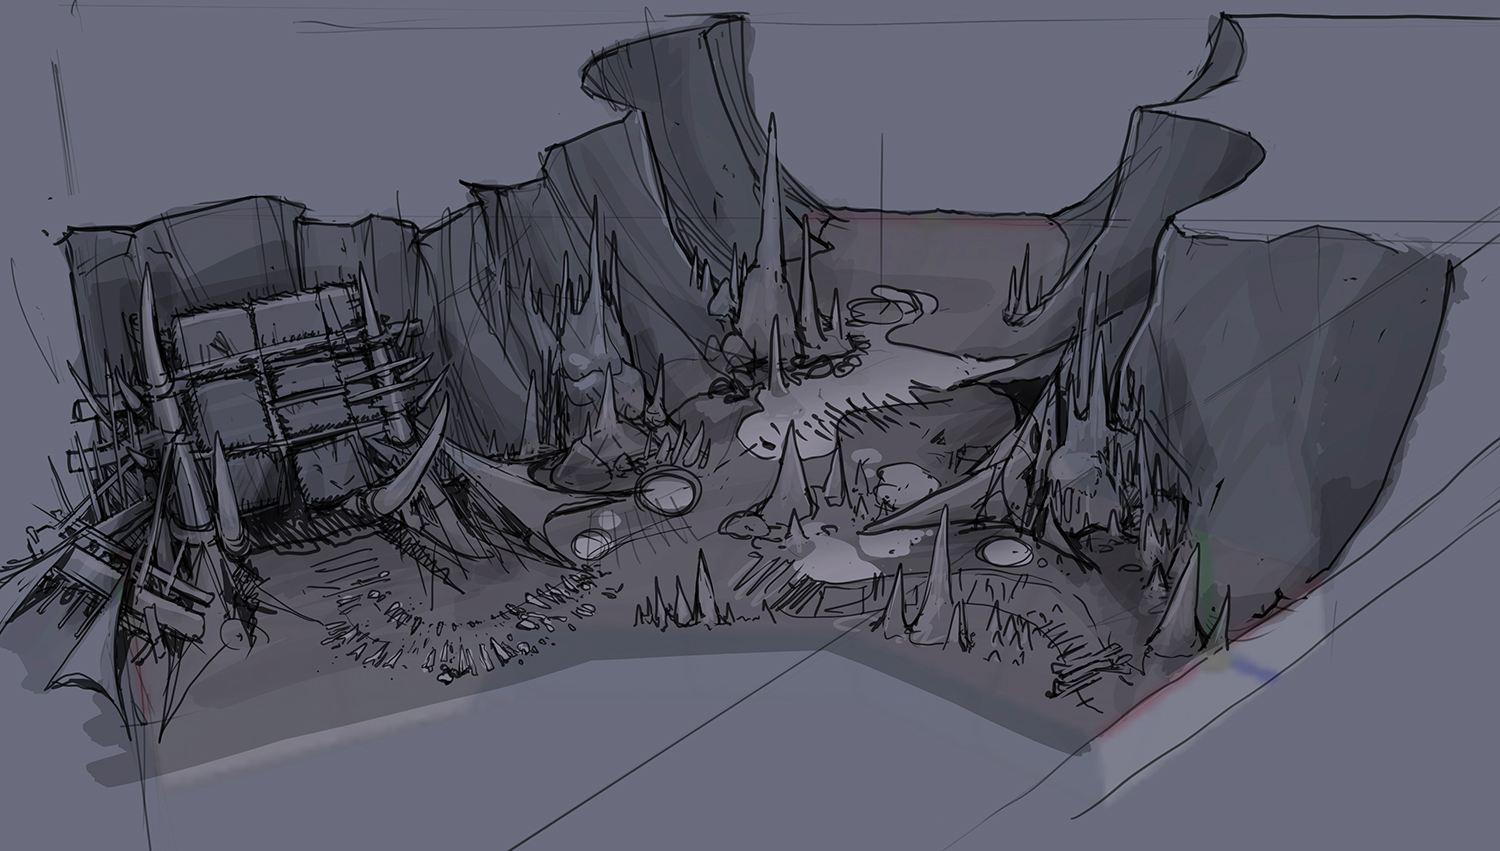 Cave_exploration_1.jpg